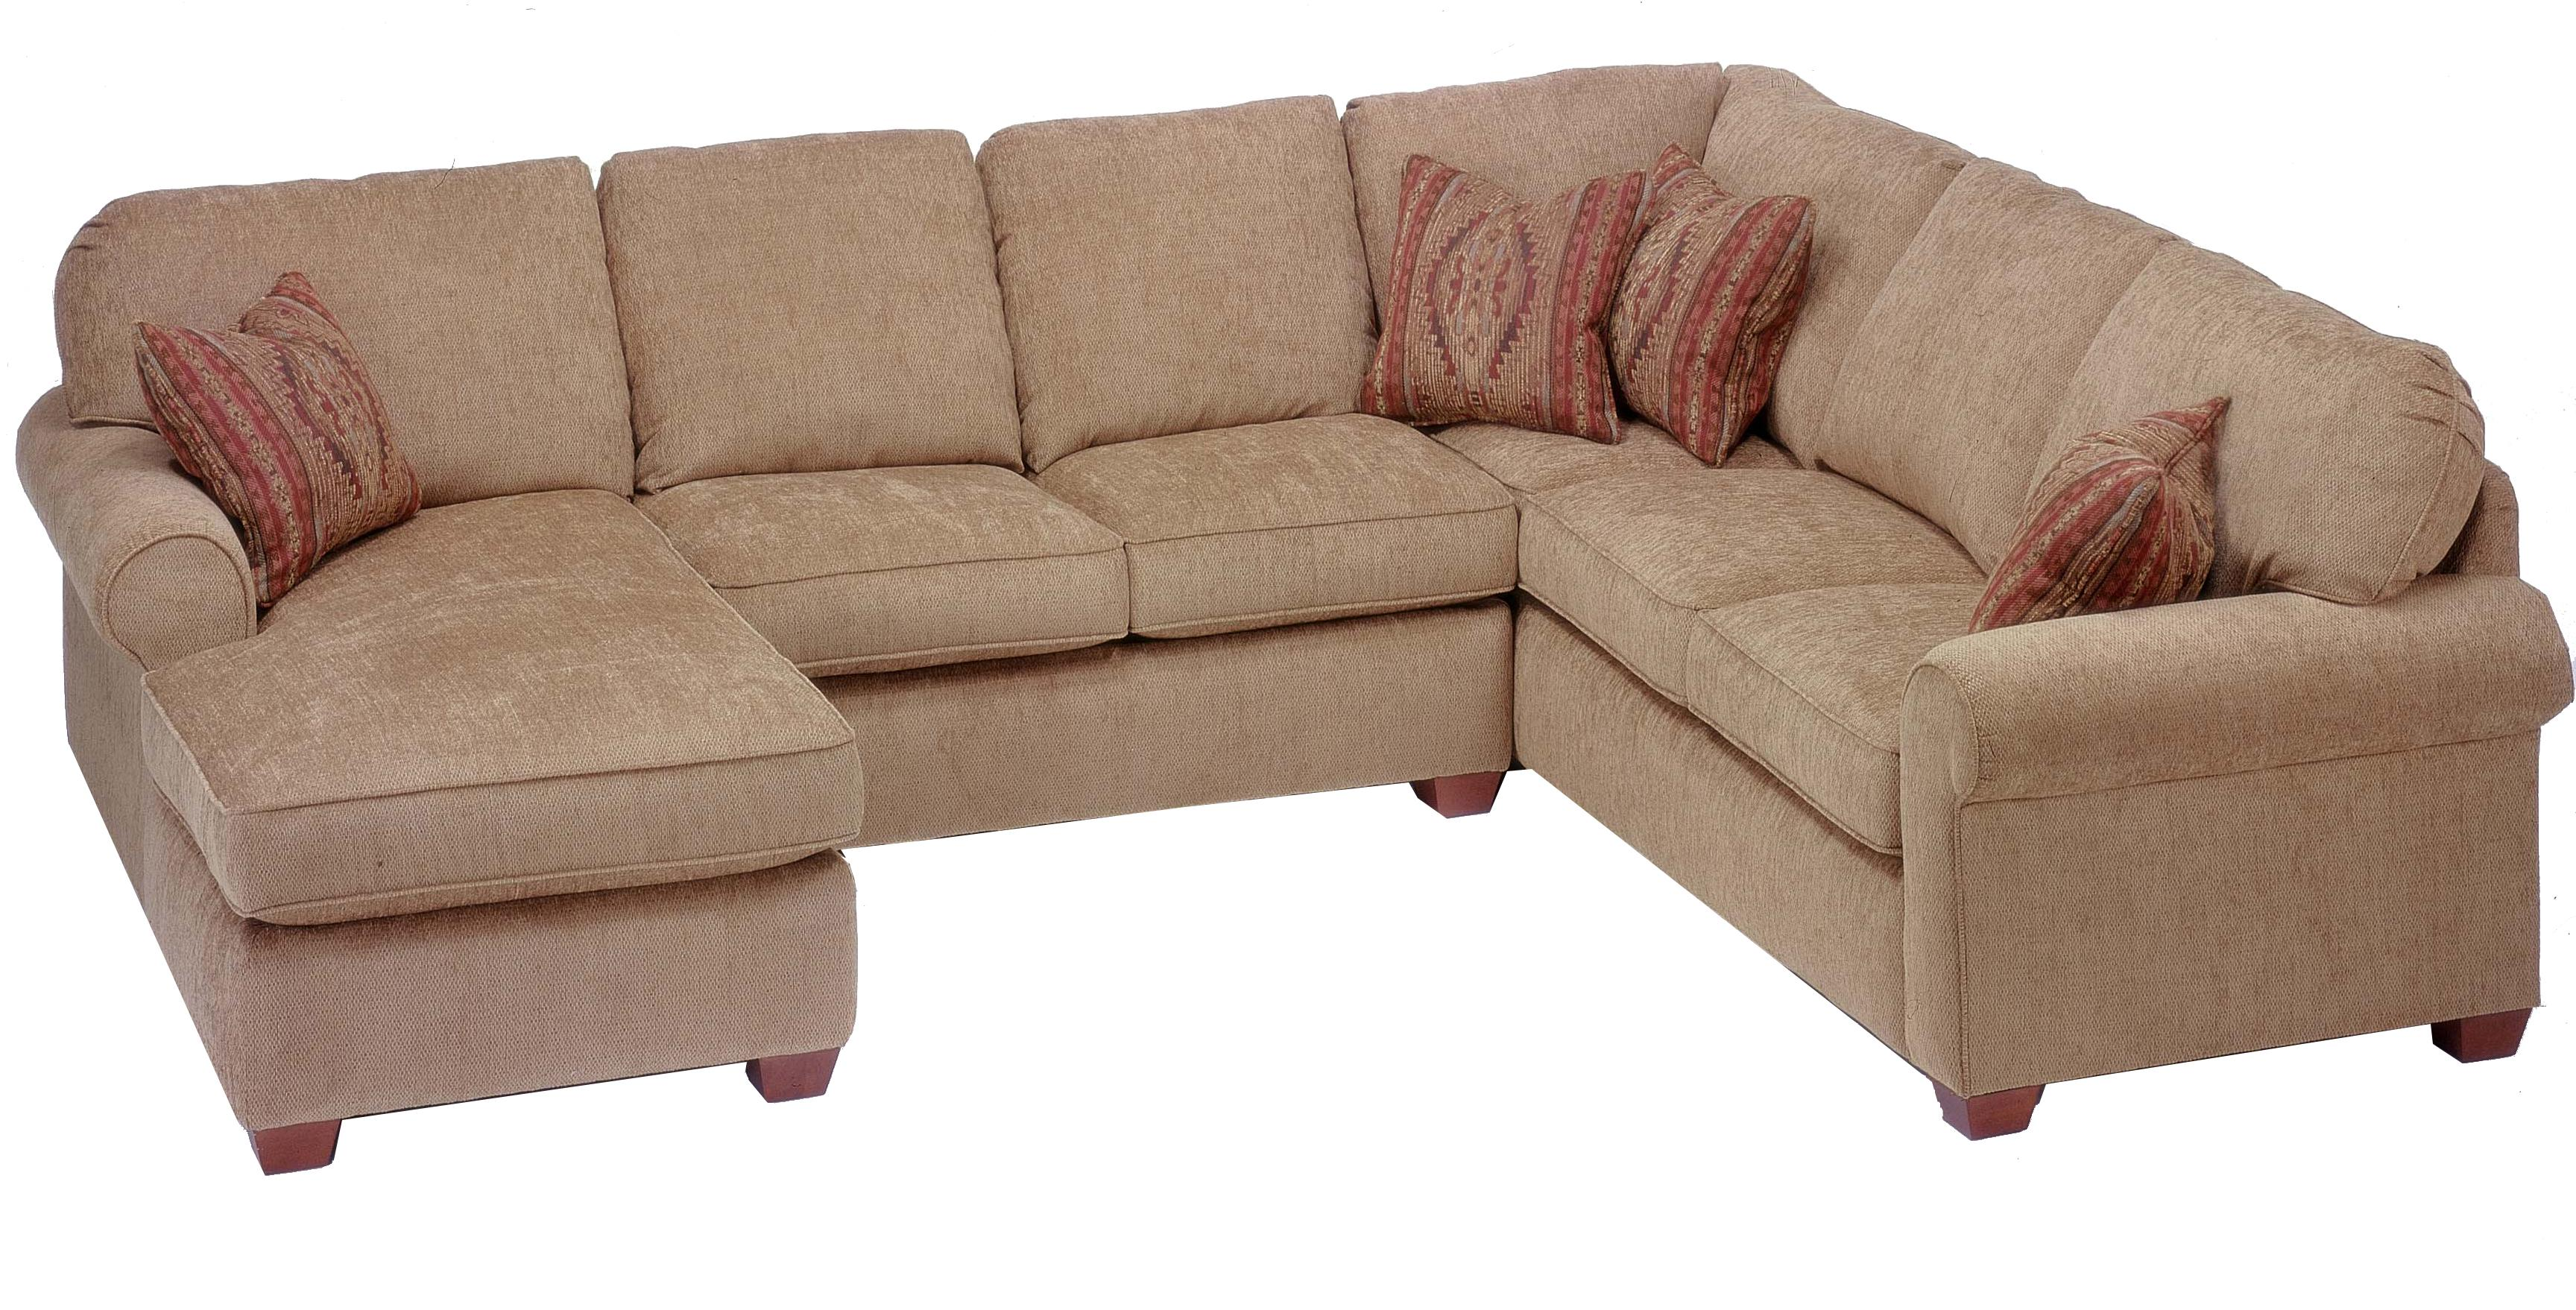 flexsteel sectional sofas abbyson living sofa laudes new town curved